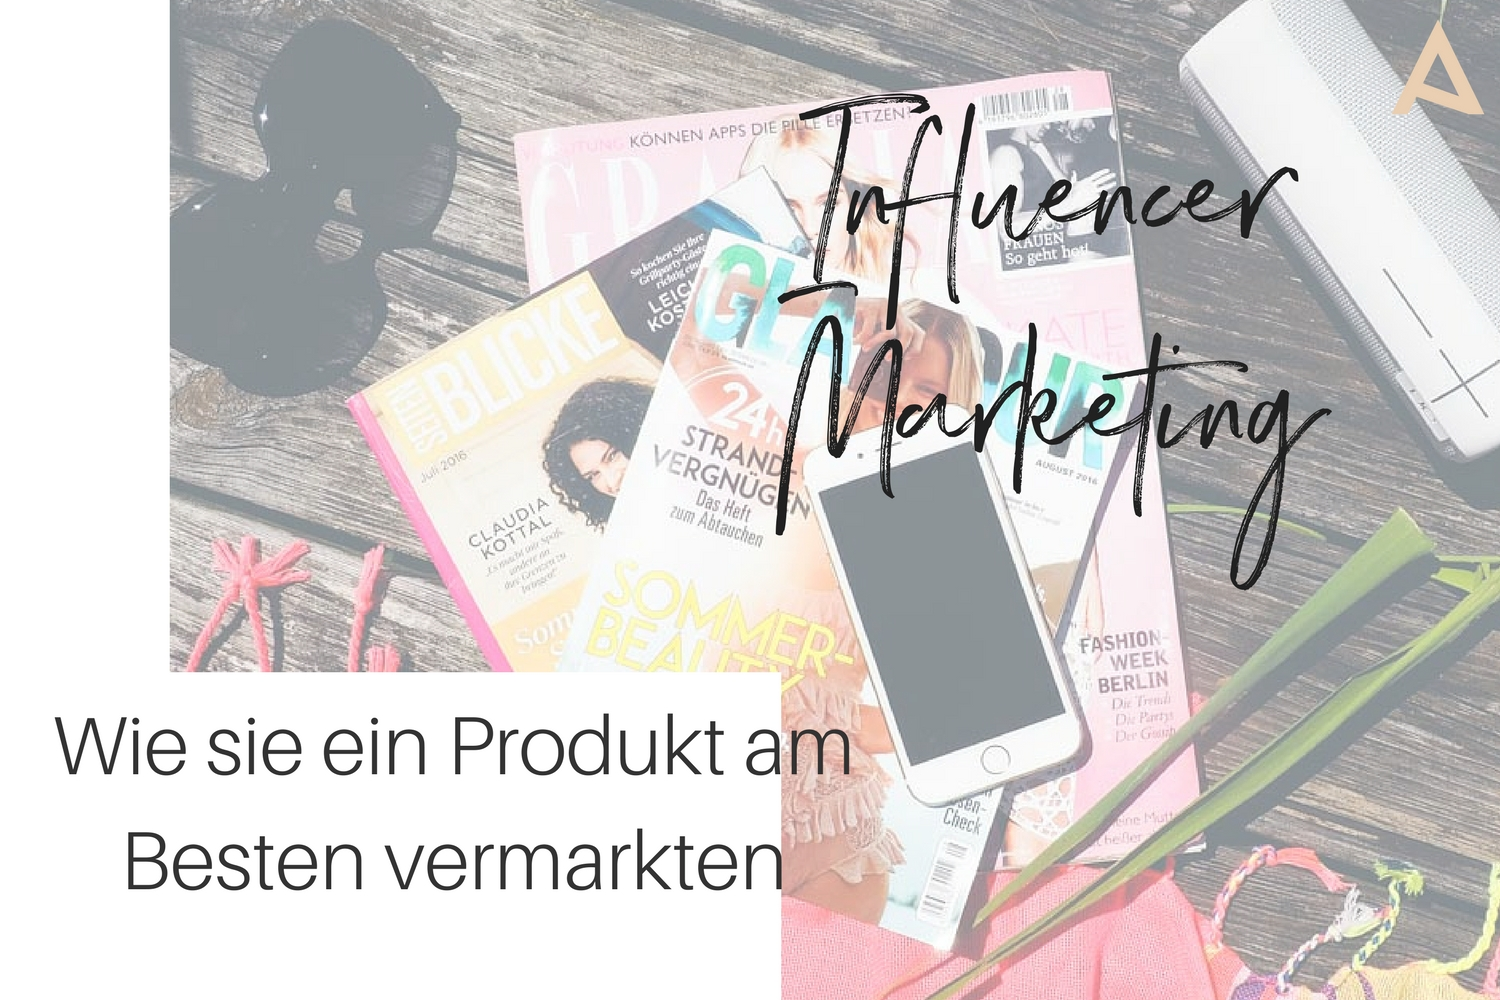 Teppich Reinigen Wie Am Besten Influencer Marketing Produkte August Agentur August